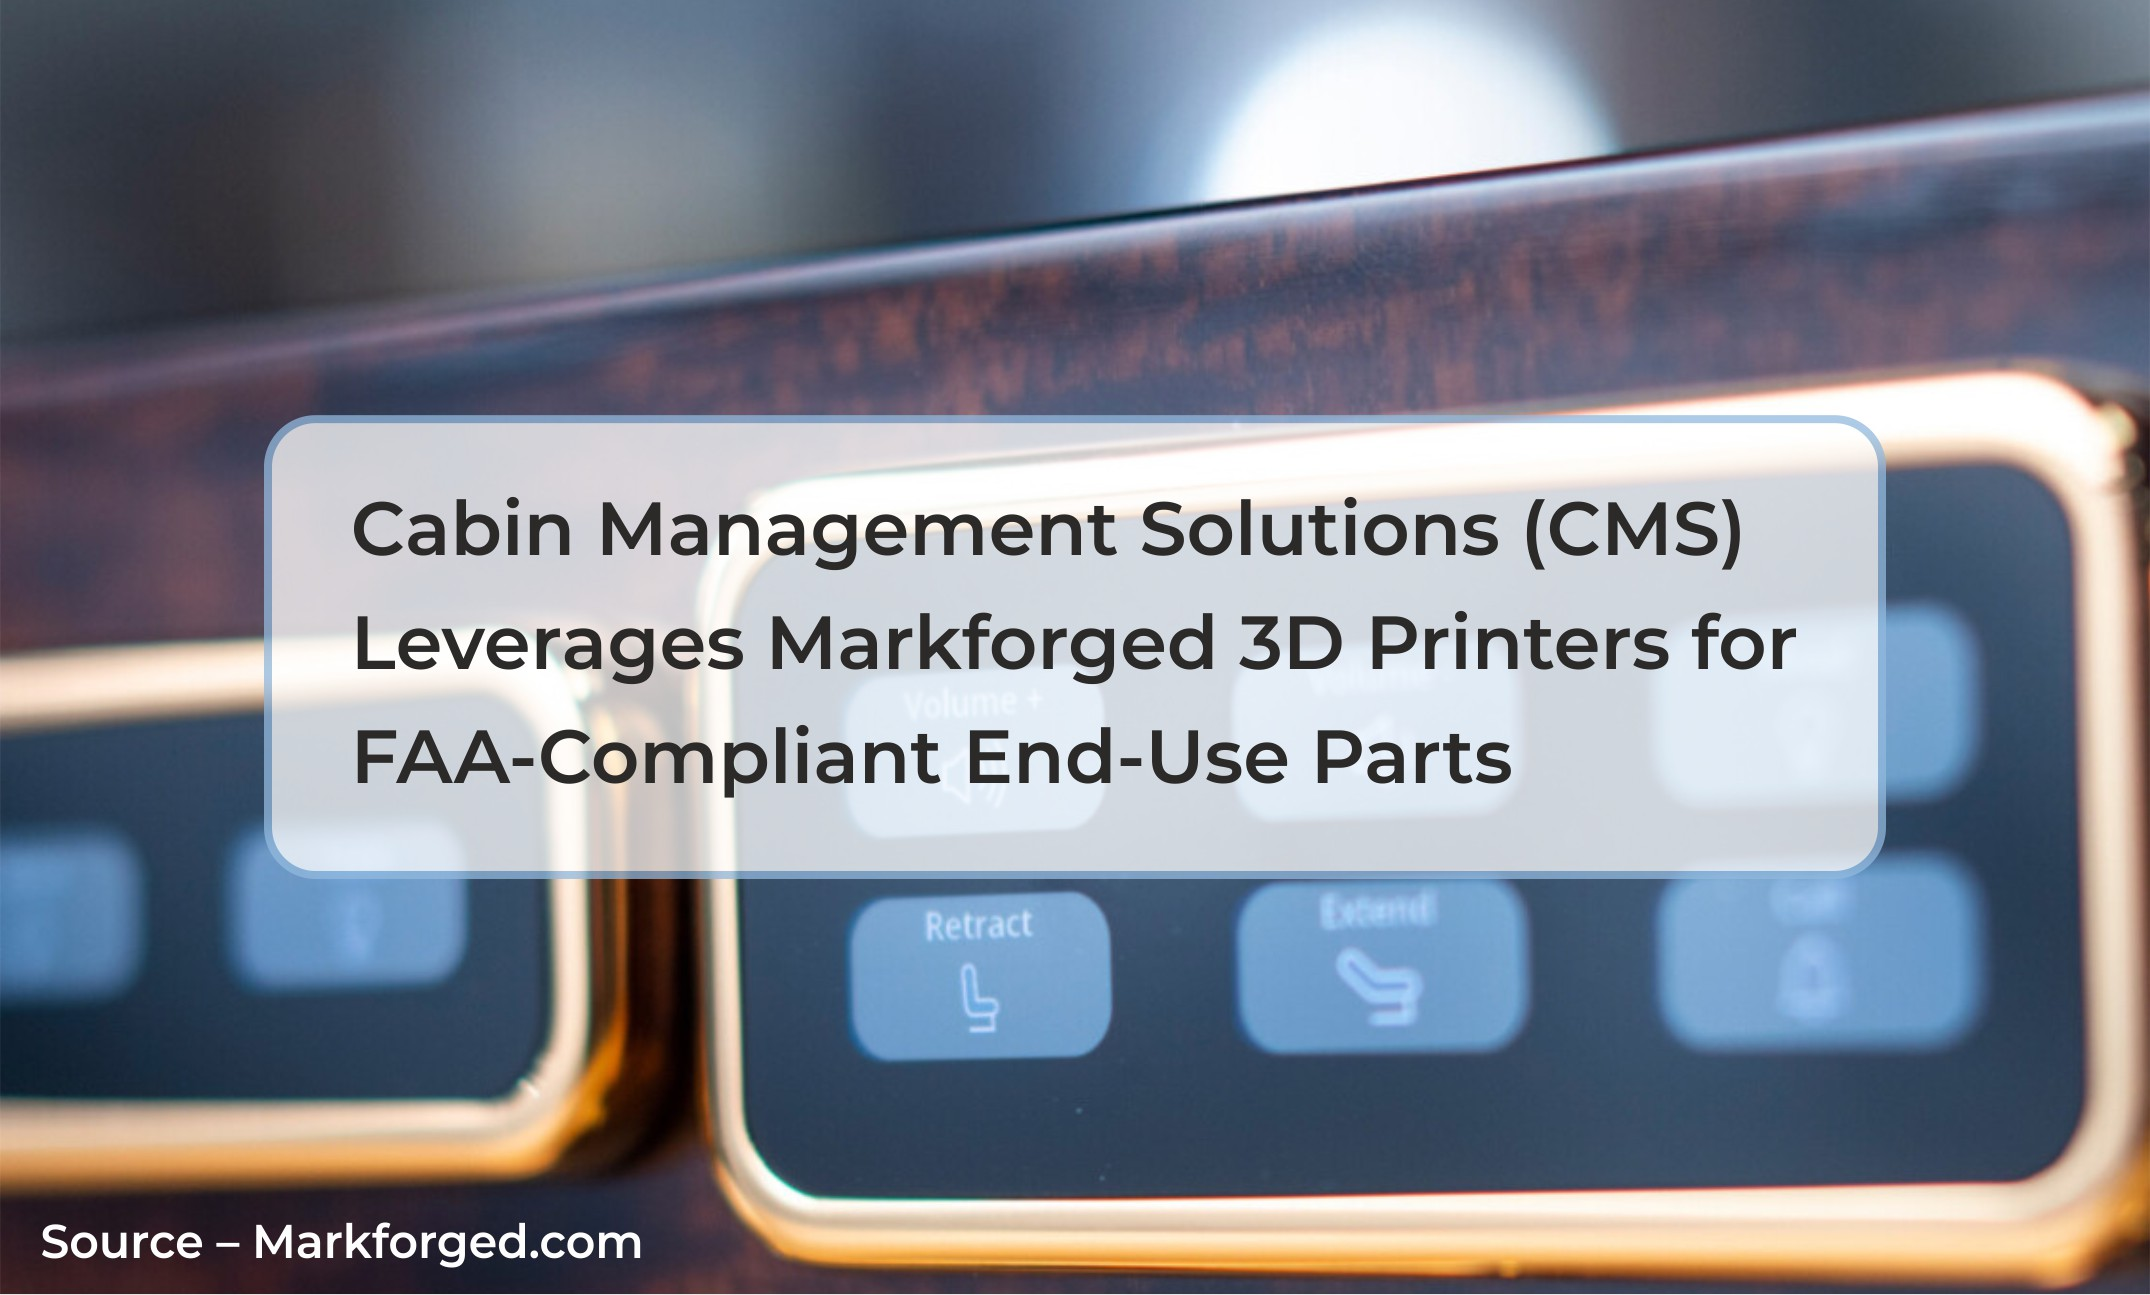 Cabin Management Solutions (CMS) leverages Markforged 3D Printers for FAA-Compliant End-Use Parts